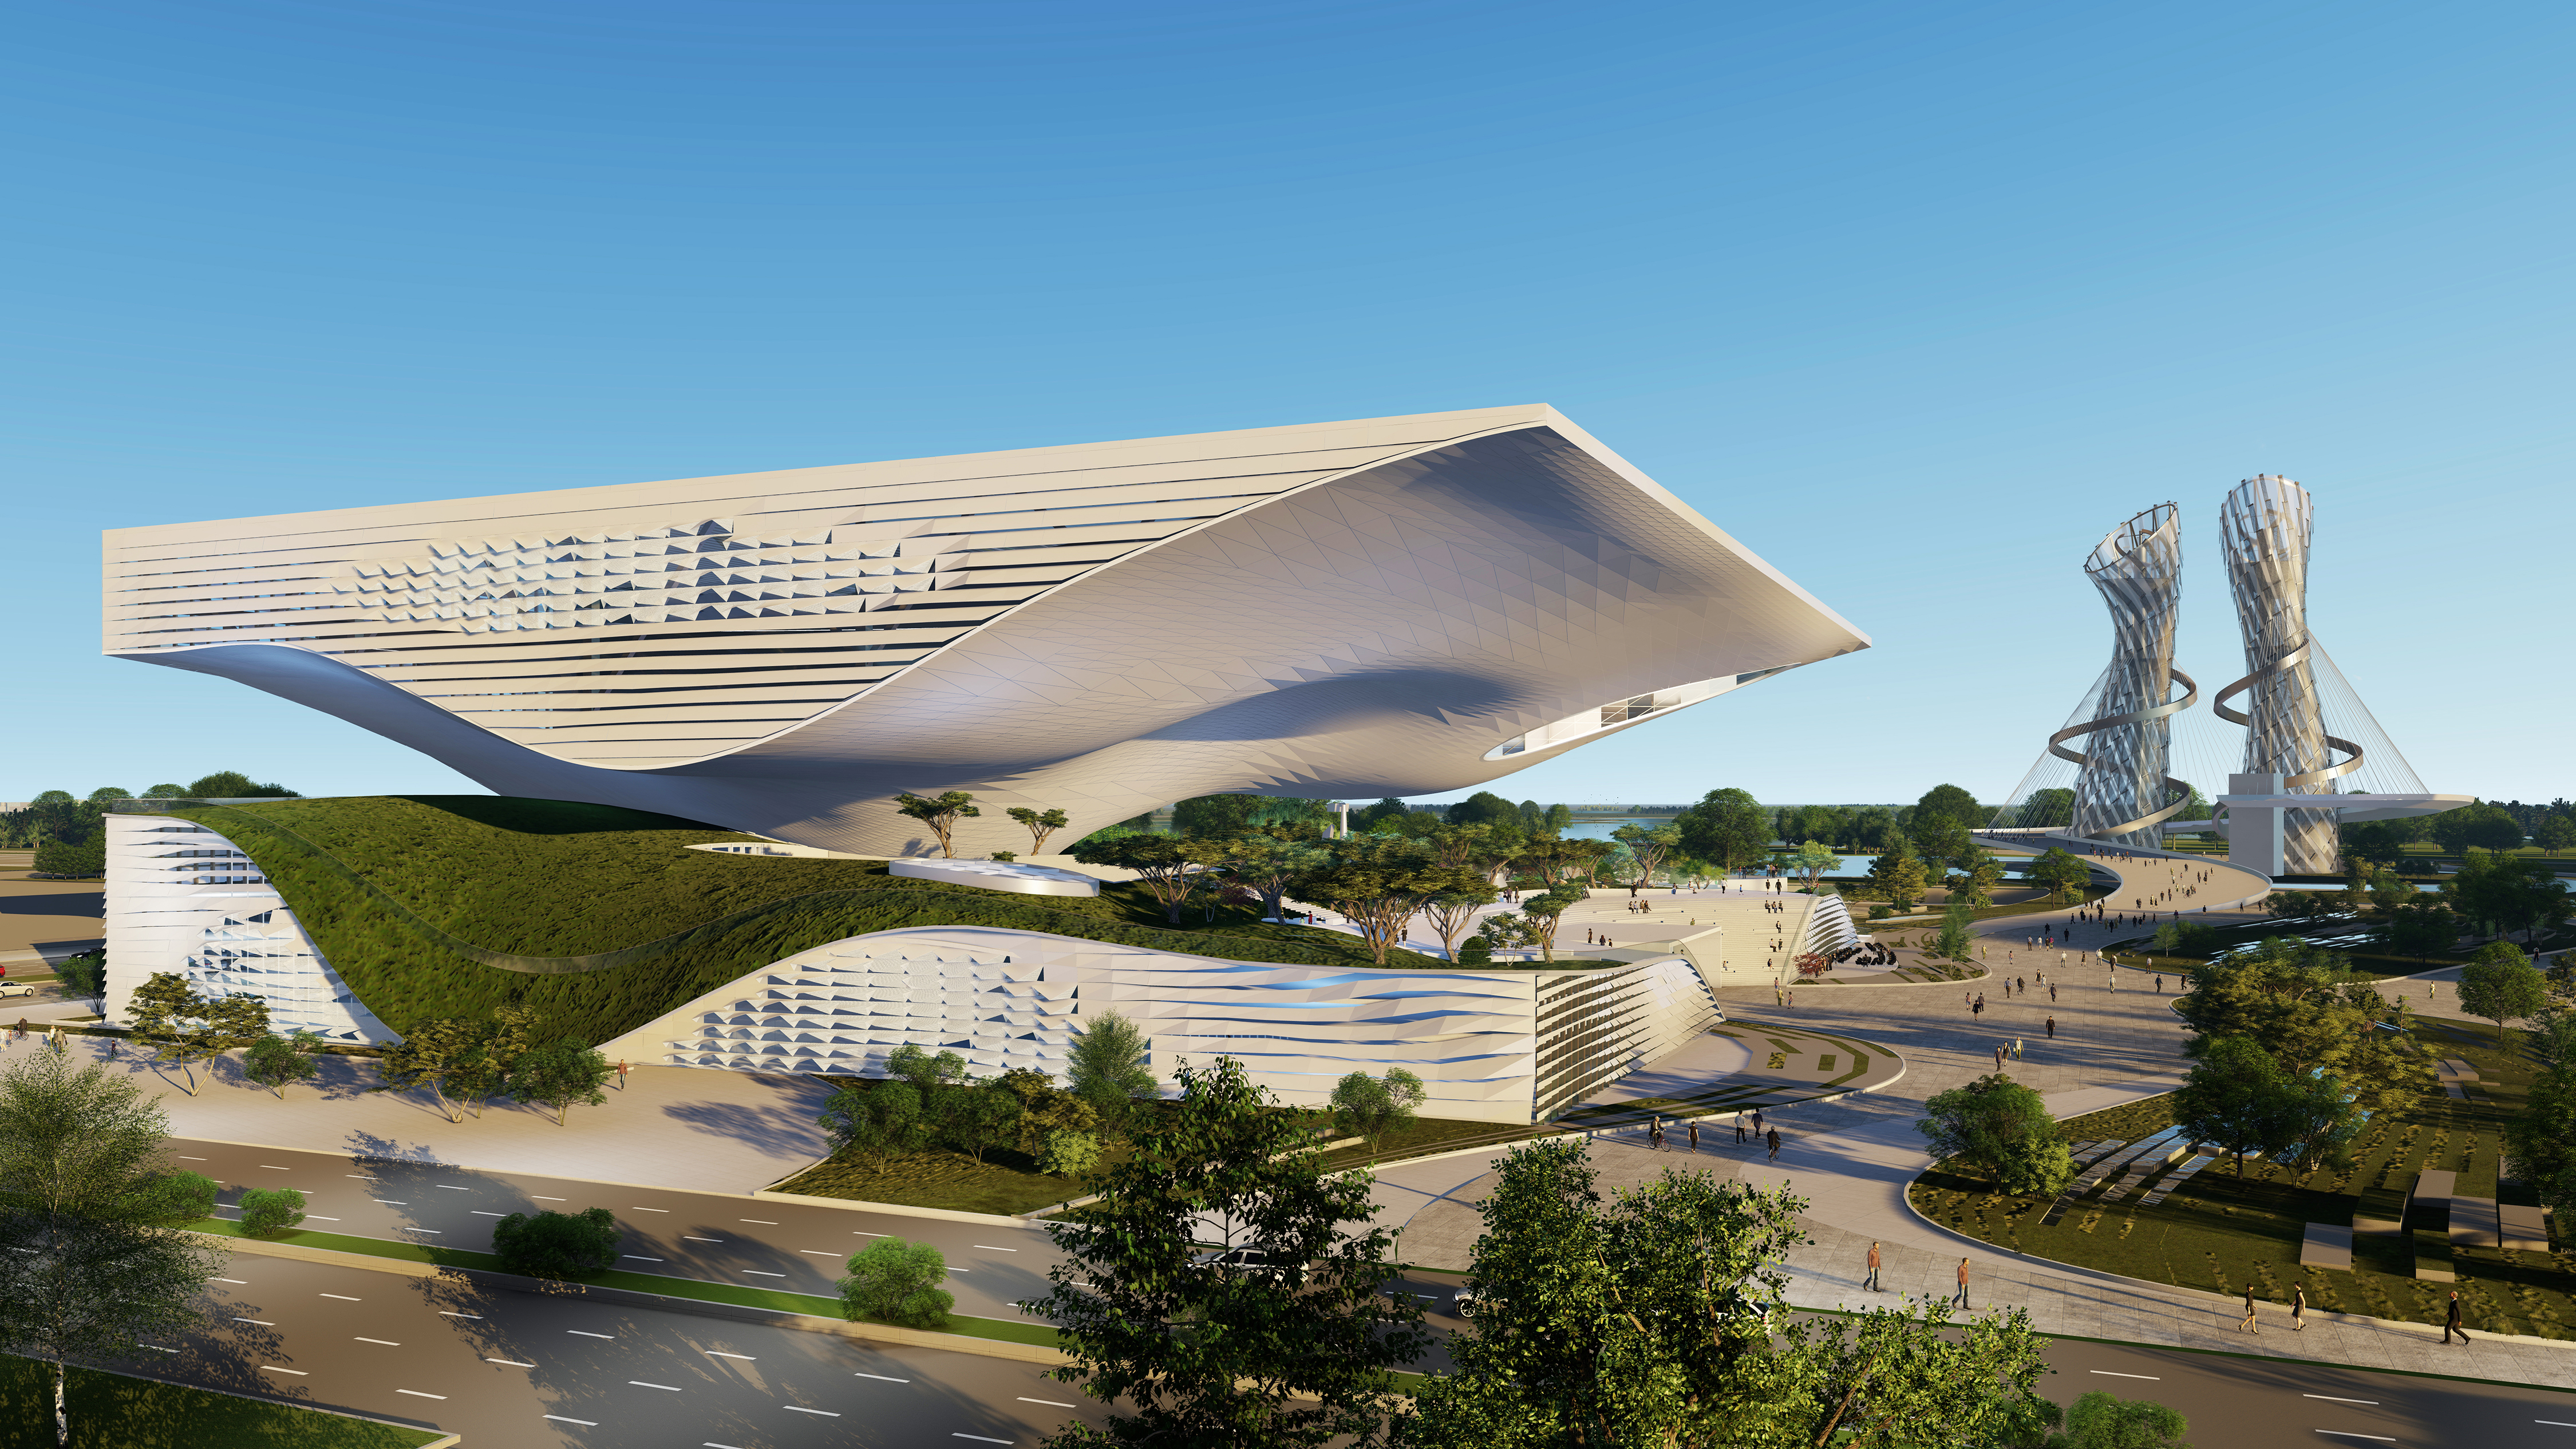 Science & Technology Museum by Coop Himmelb(l)au